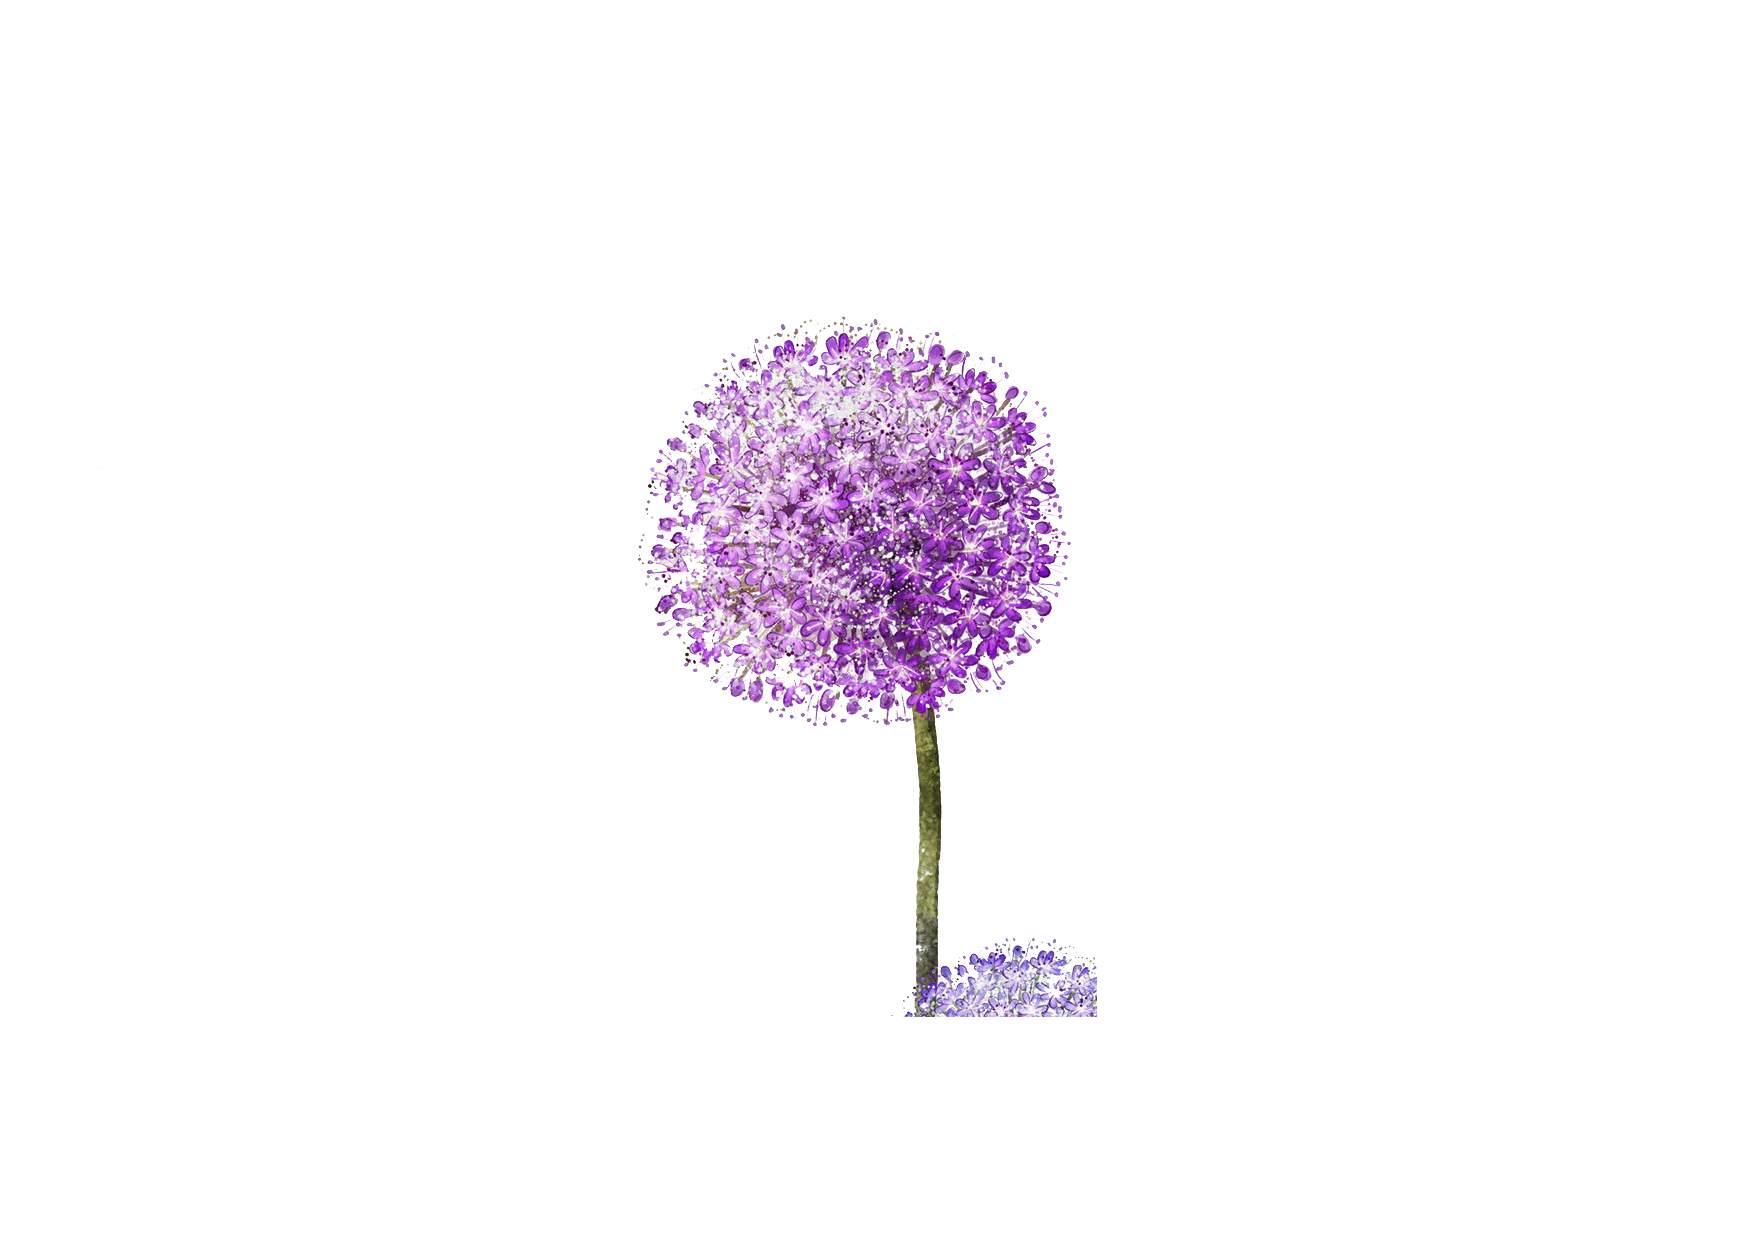 Dandelion transparent purple. Wallpaper transprent png free